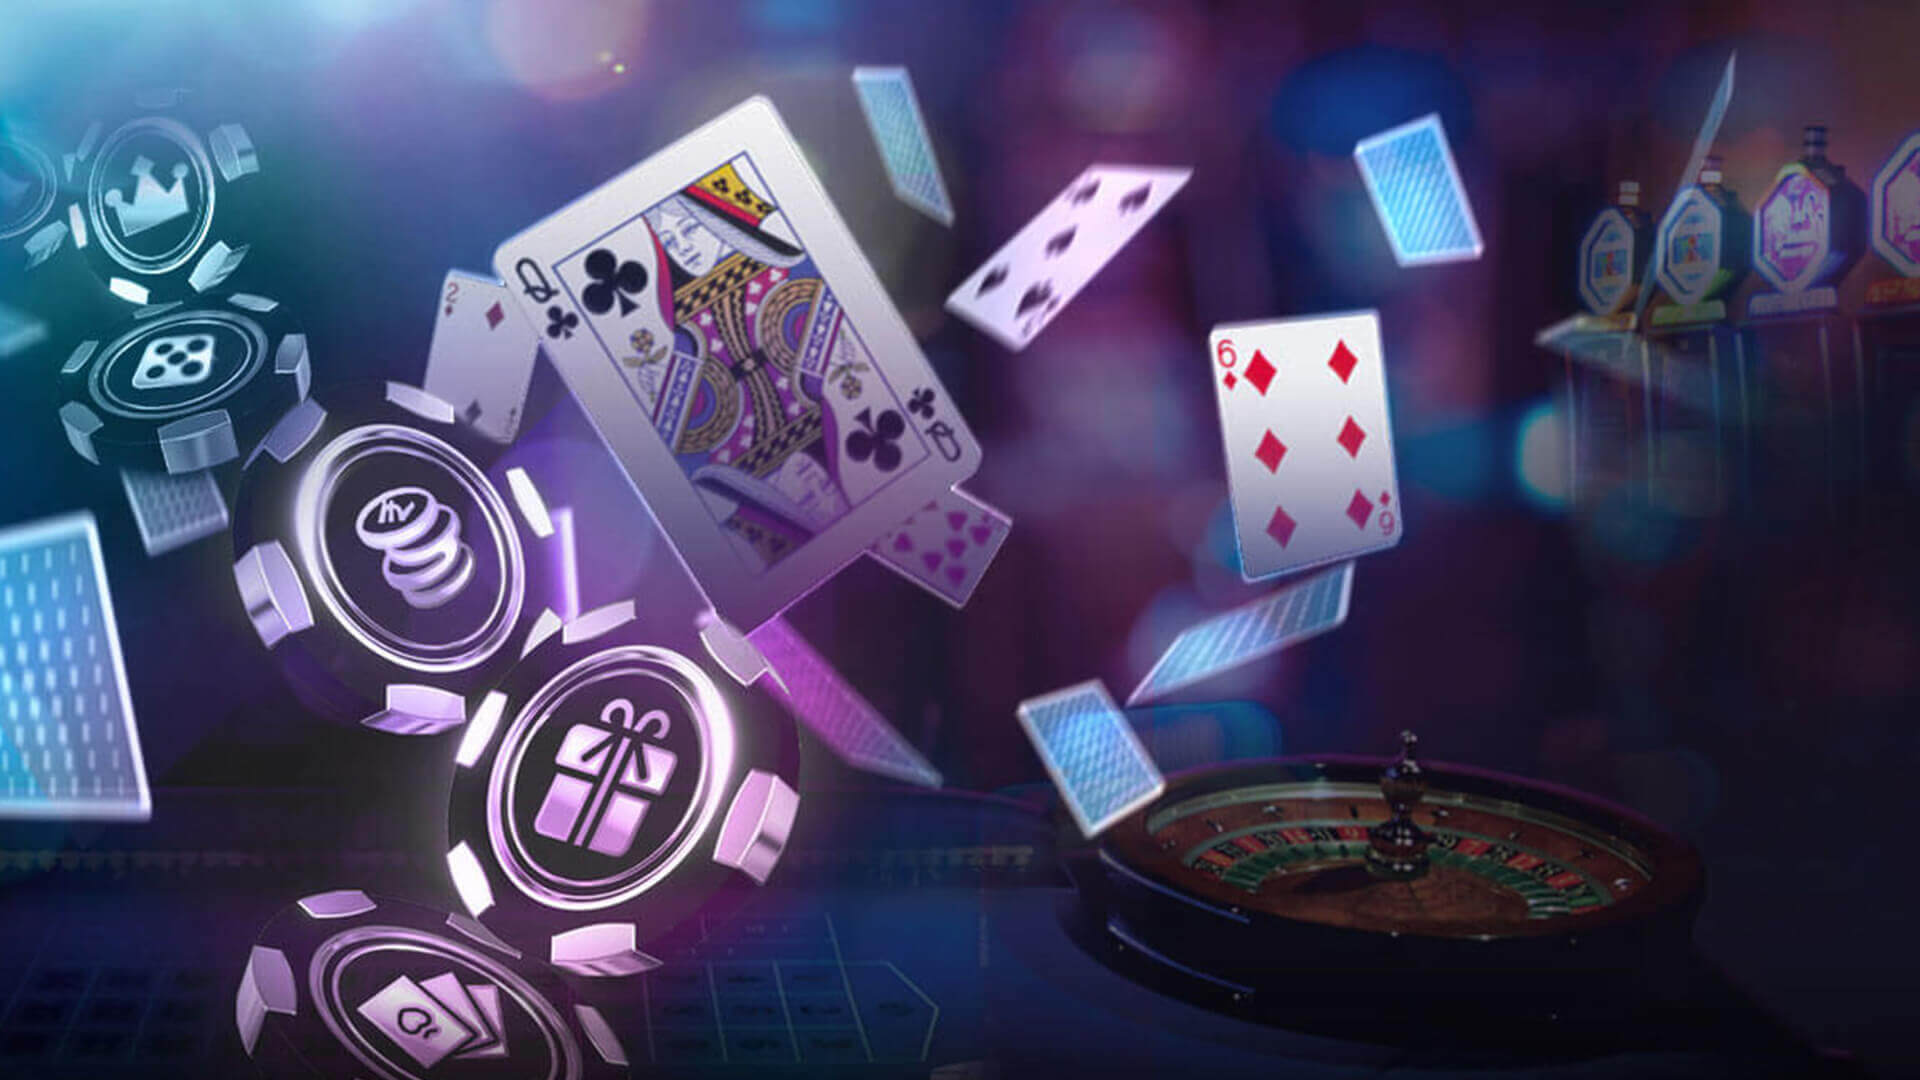 What Are The Pros Of Agen Poker Terpercaya?